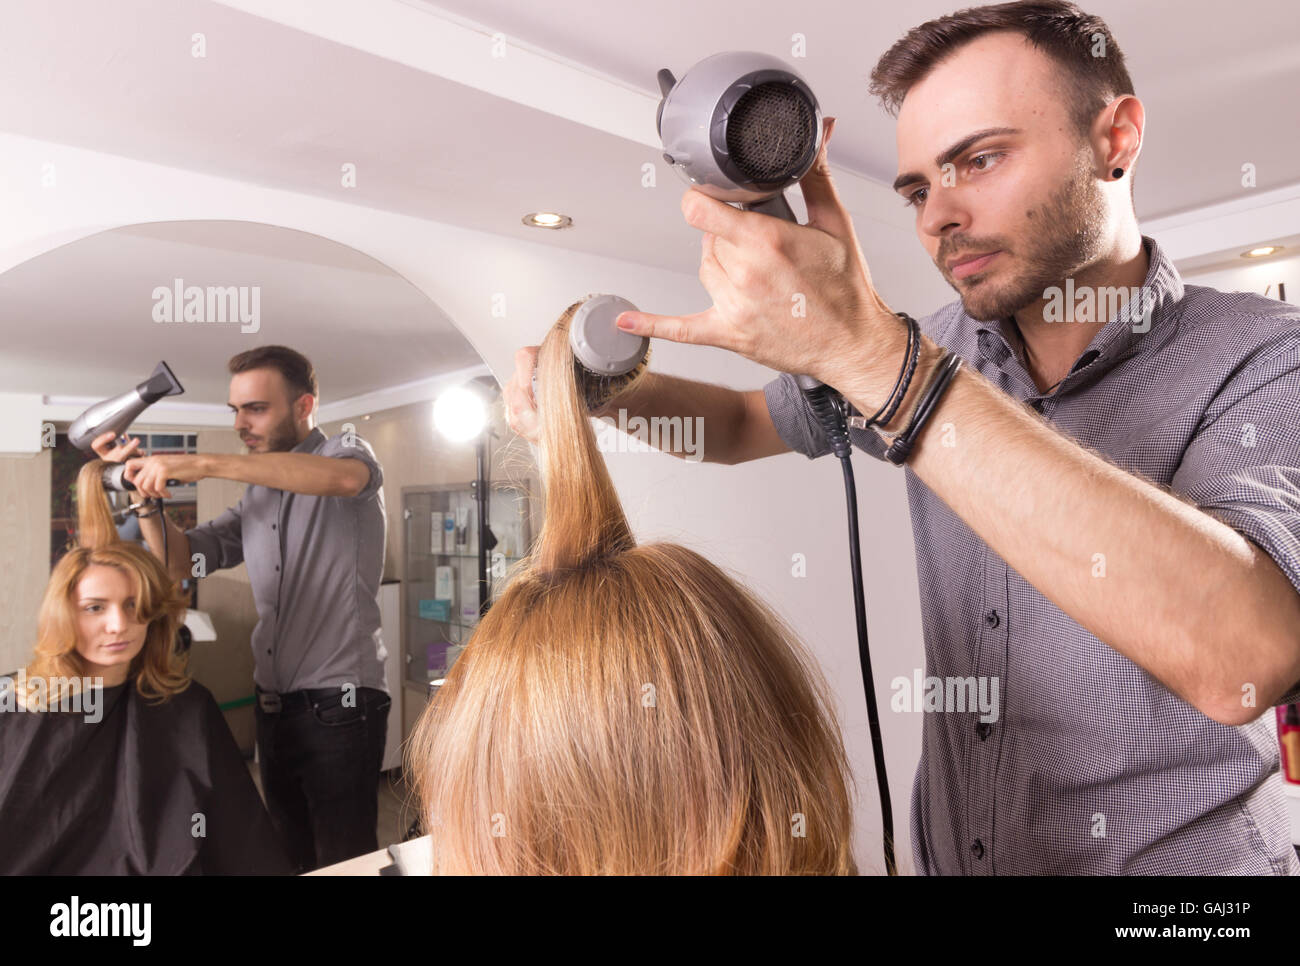 man hairstylist blow drying comb roller woman hair, rear view. - Stock Image